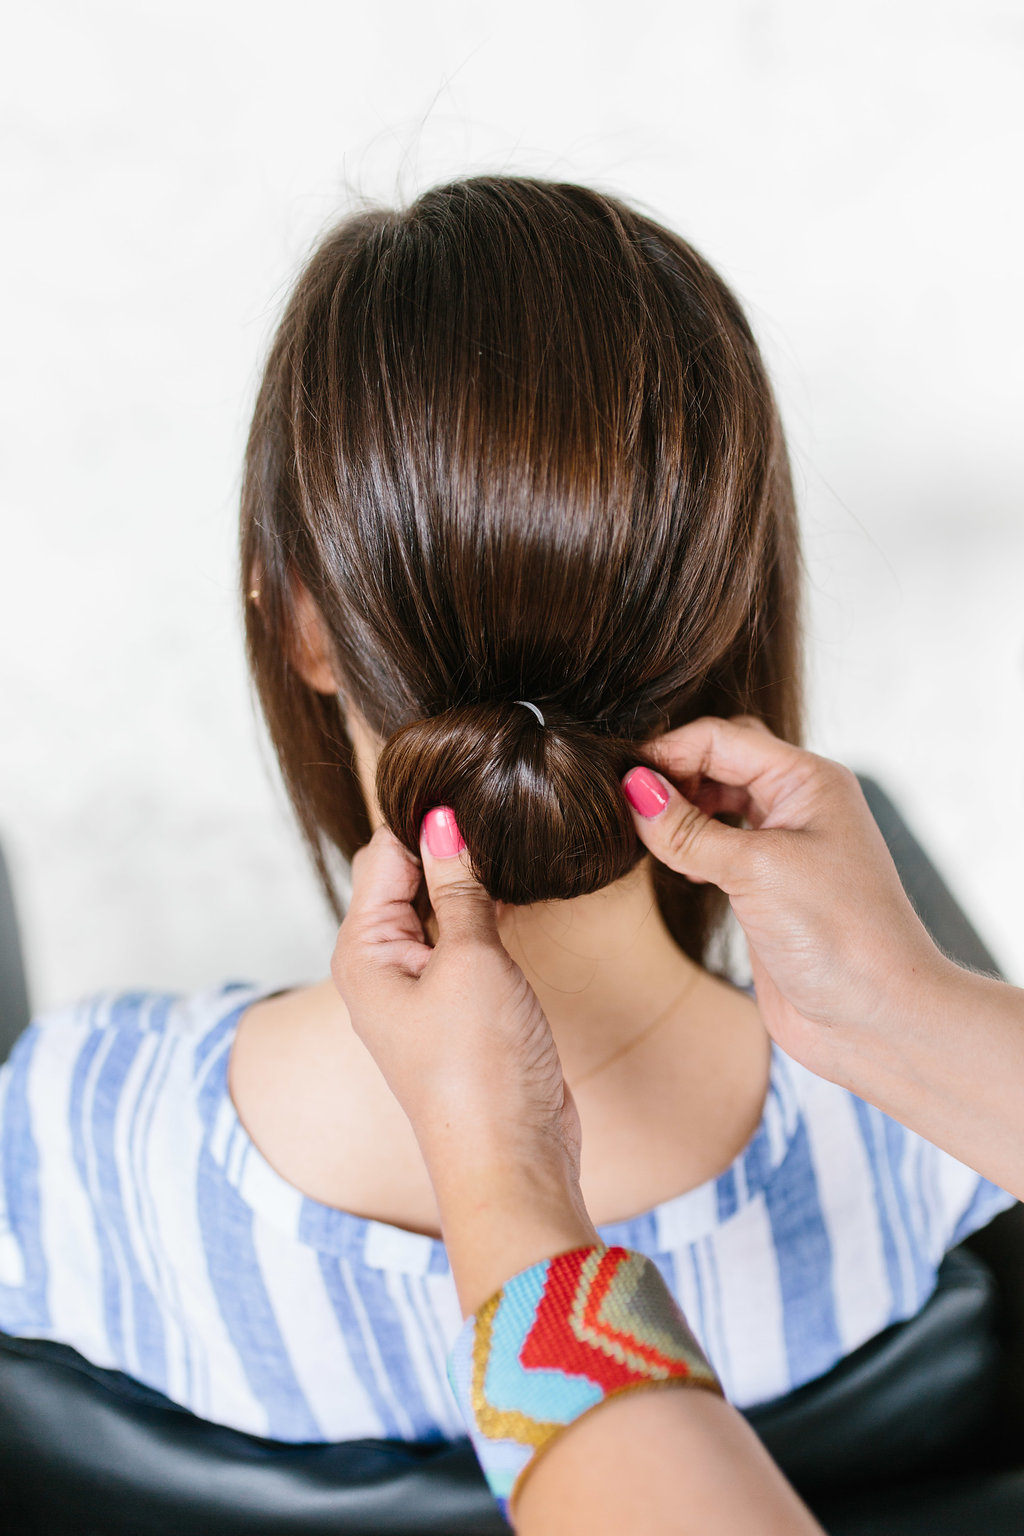 Securing the bun before braiding